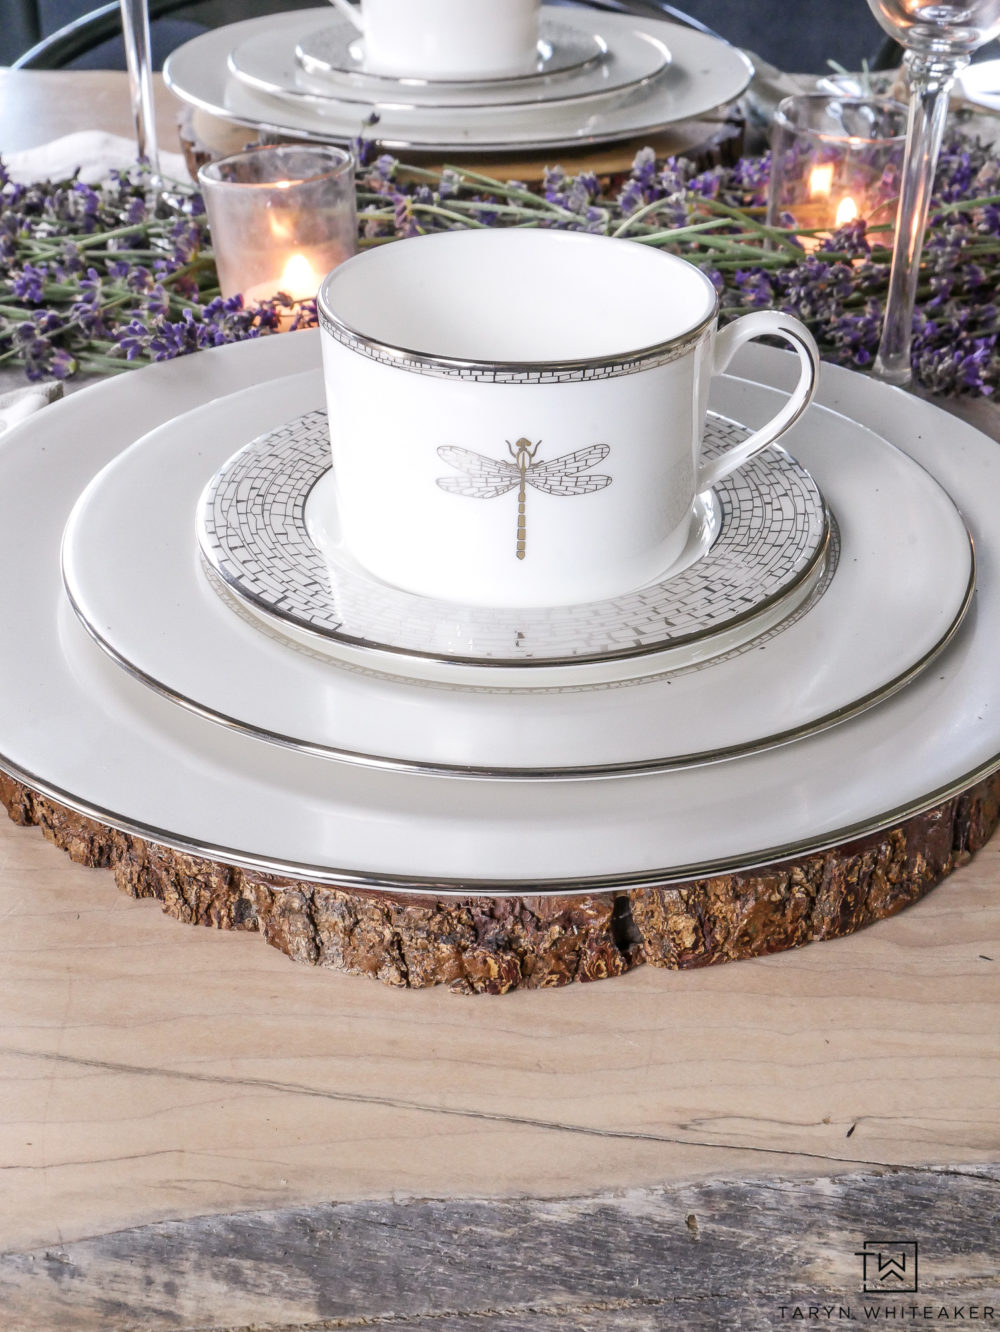 Kate Spade June Lane fine china paired with wood round charger.